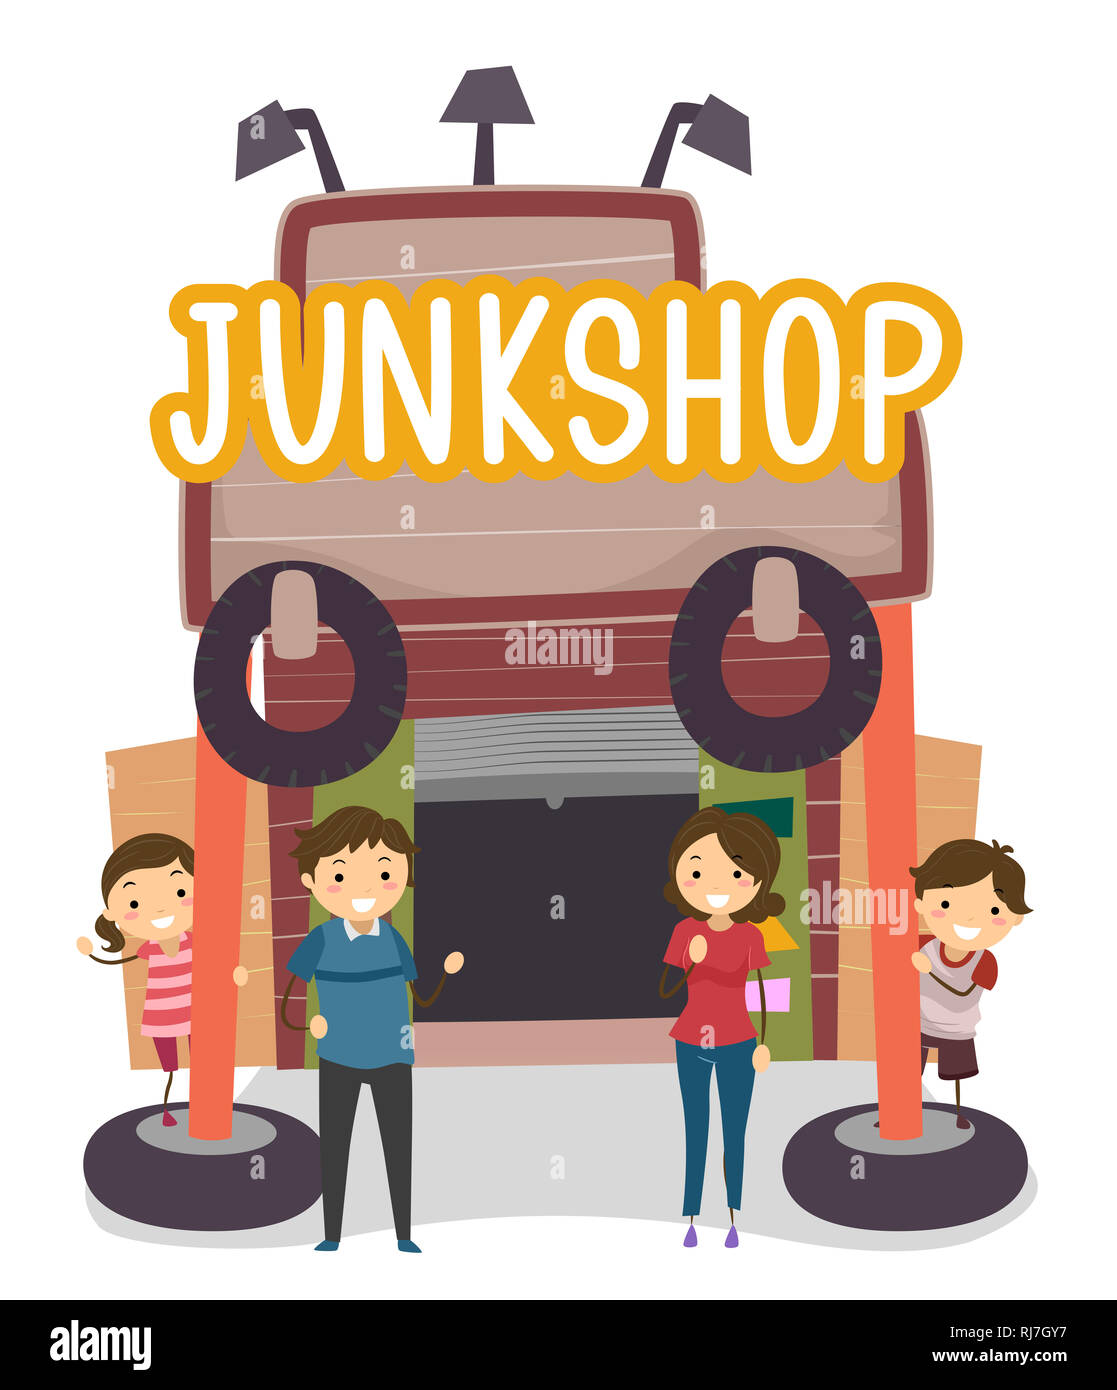 Illustration of Stickman Family in Front of their Junk Shop - Stock Image